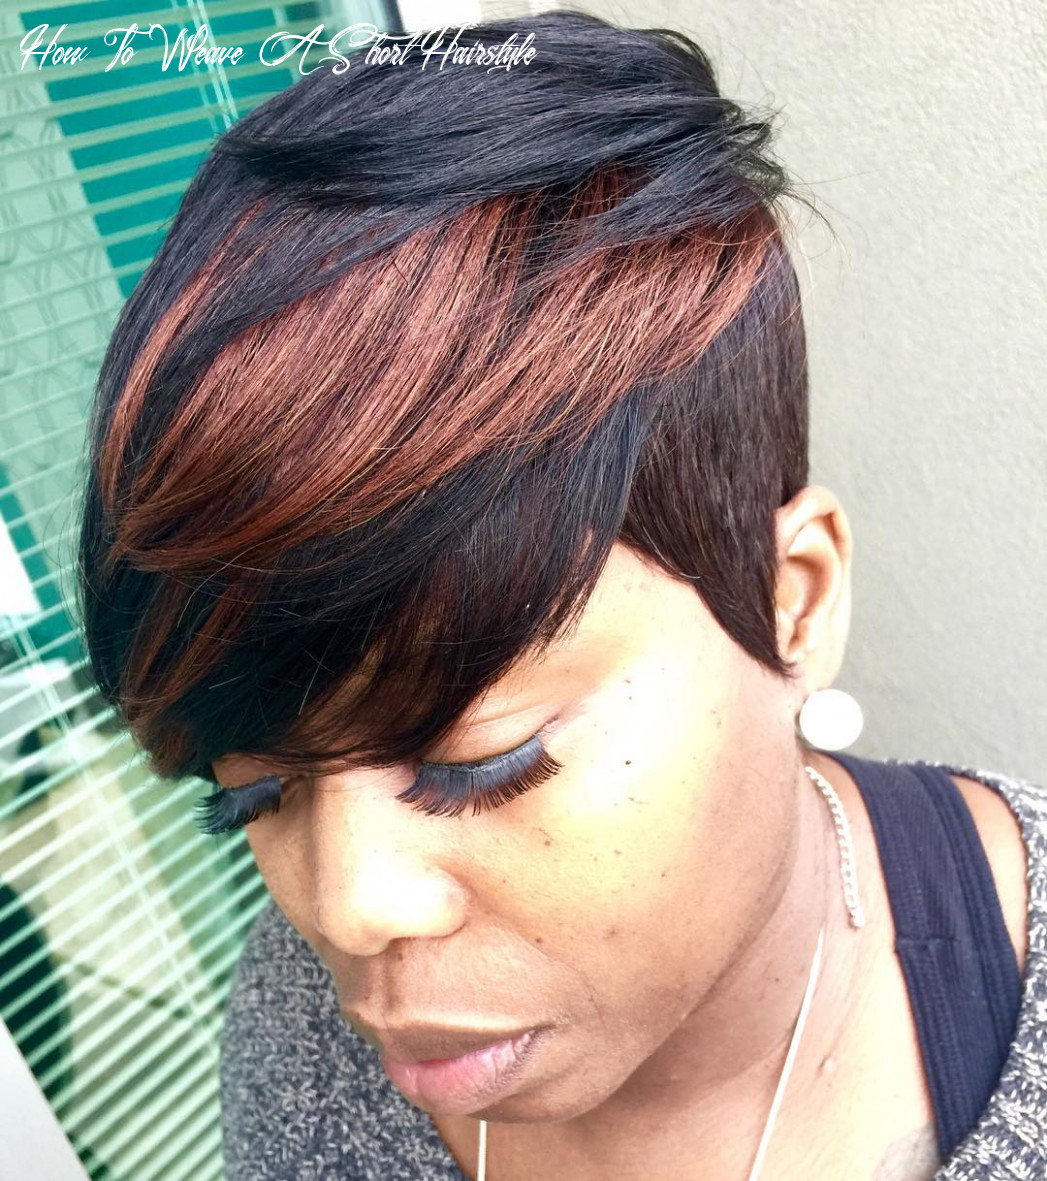 Top 9 short hair quick weave 9 | hair style and color for woman how to weave a short hairstyle